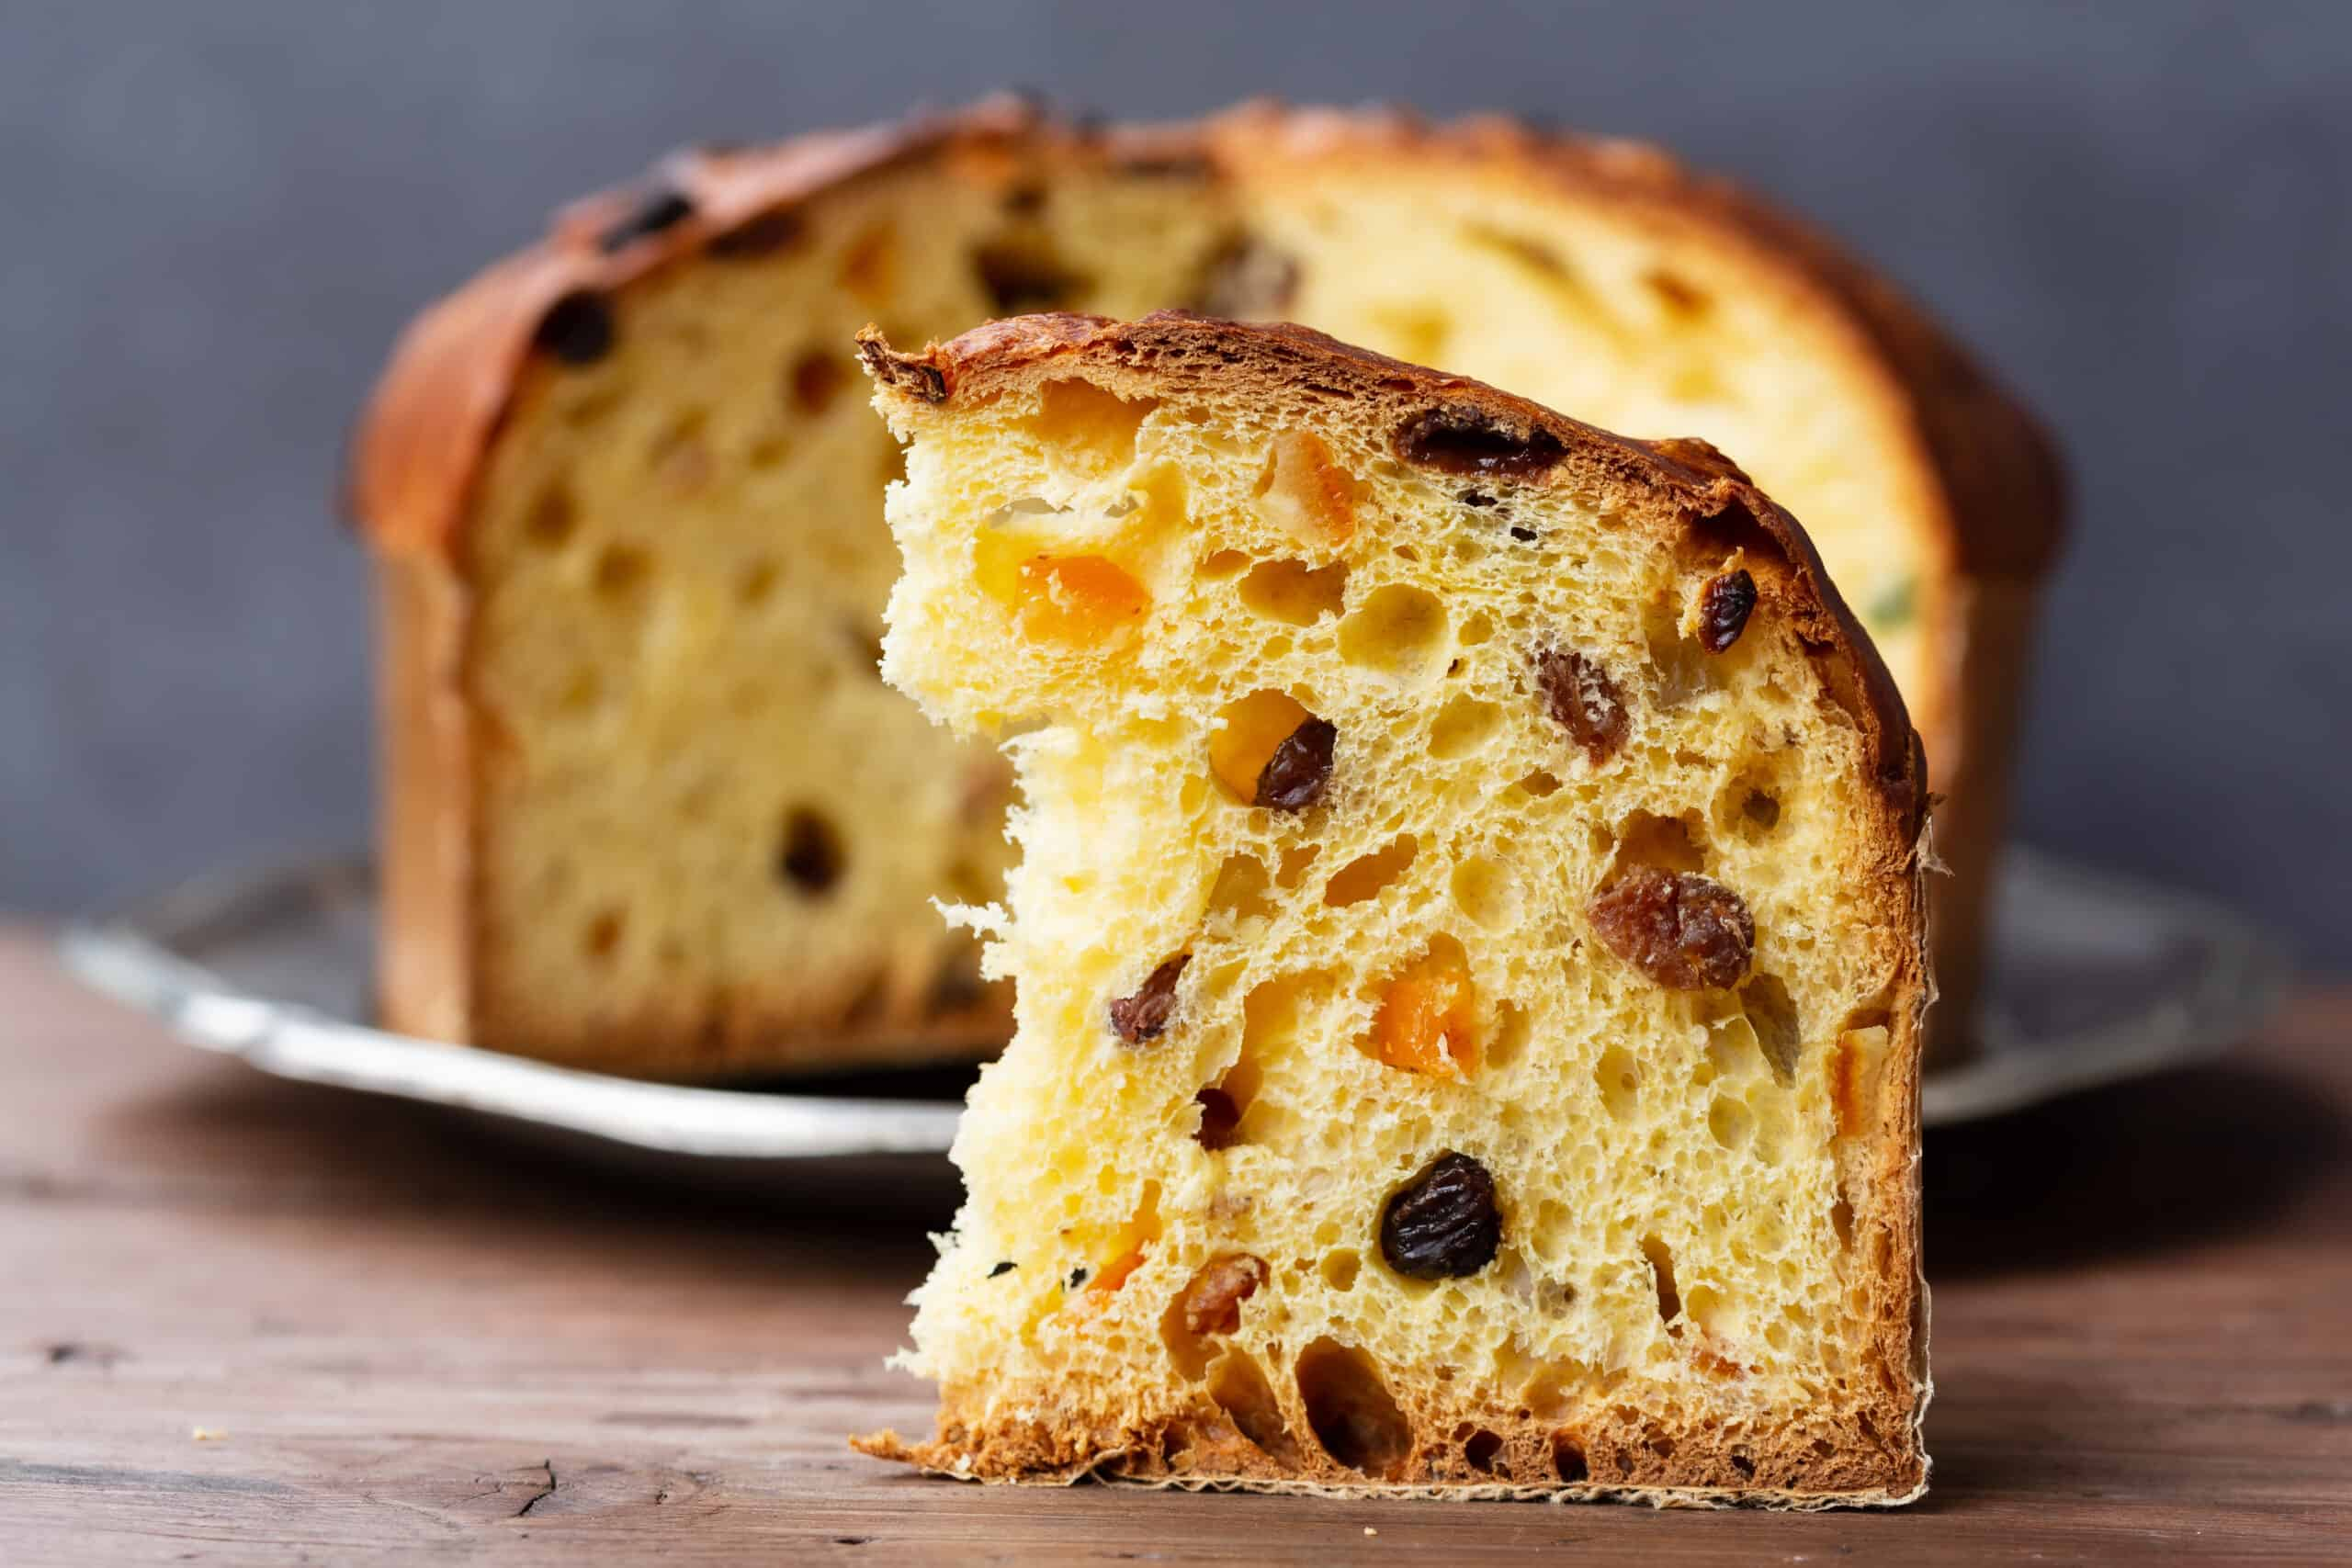 Imaghe for the article about how to make Panetone on Biancolievito